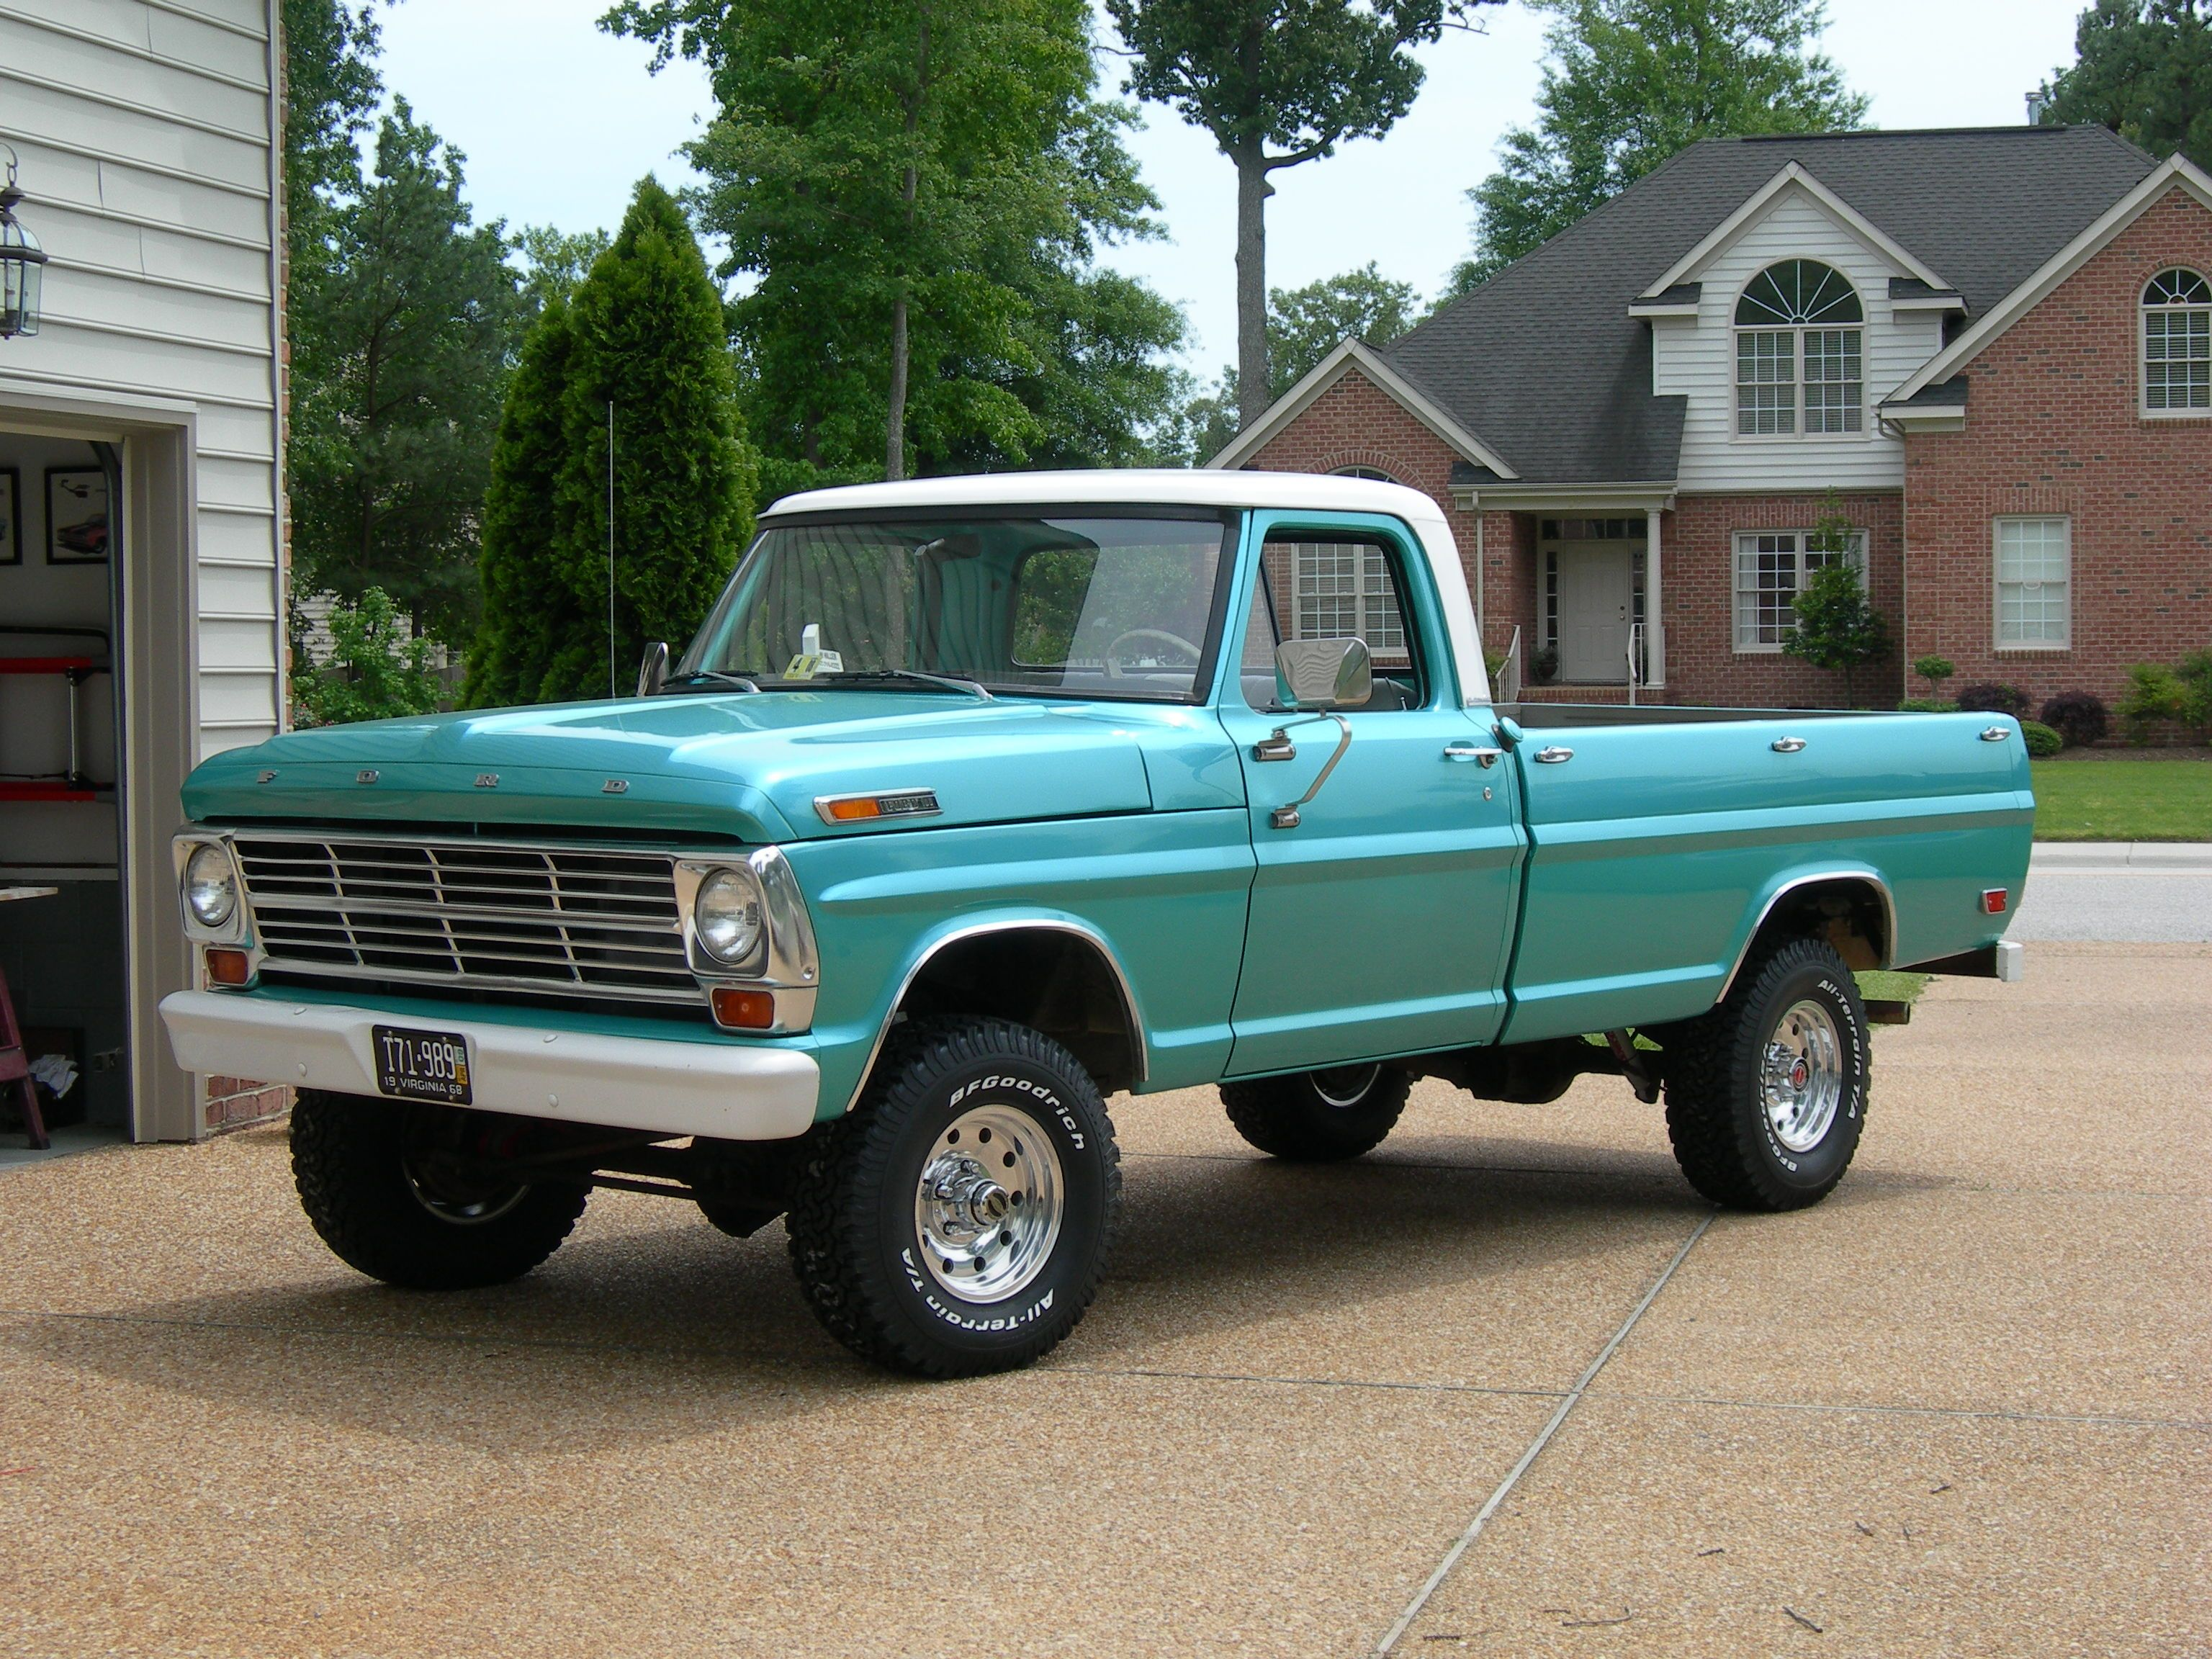 medium resolution of 68 ford 4x4 f100 ours was a 3 4 ton f250